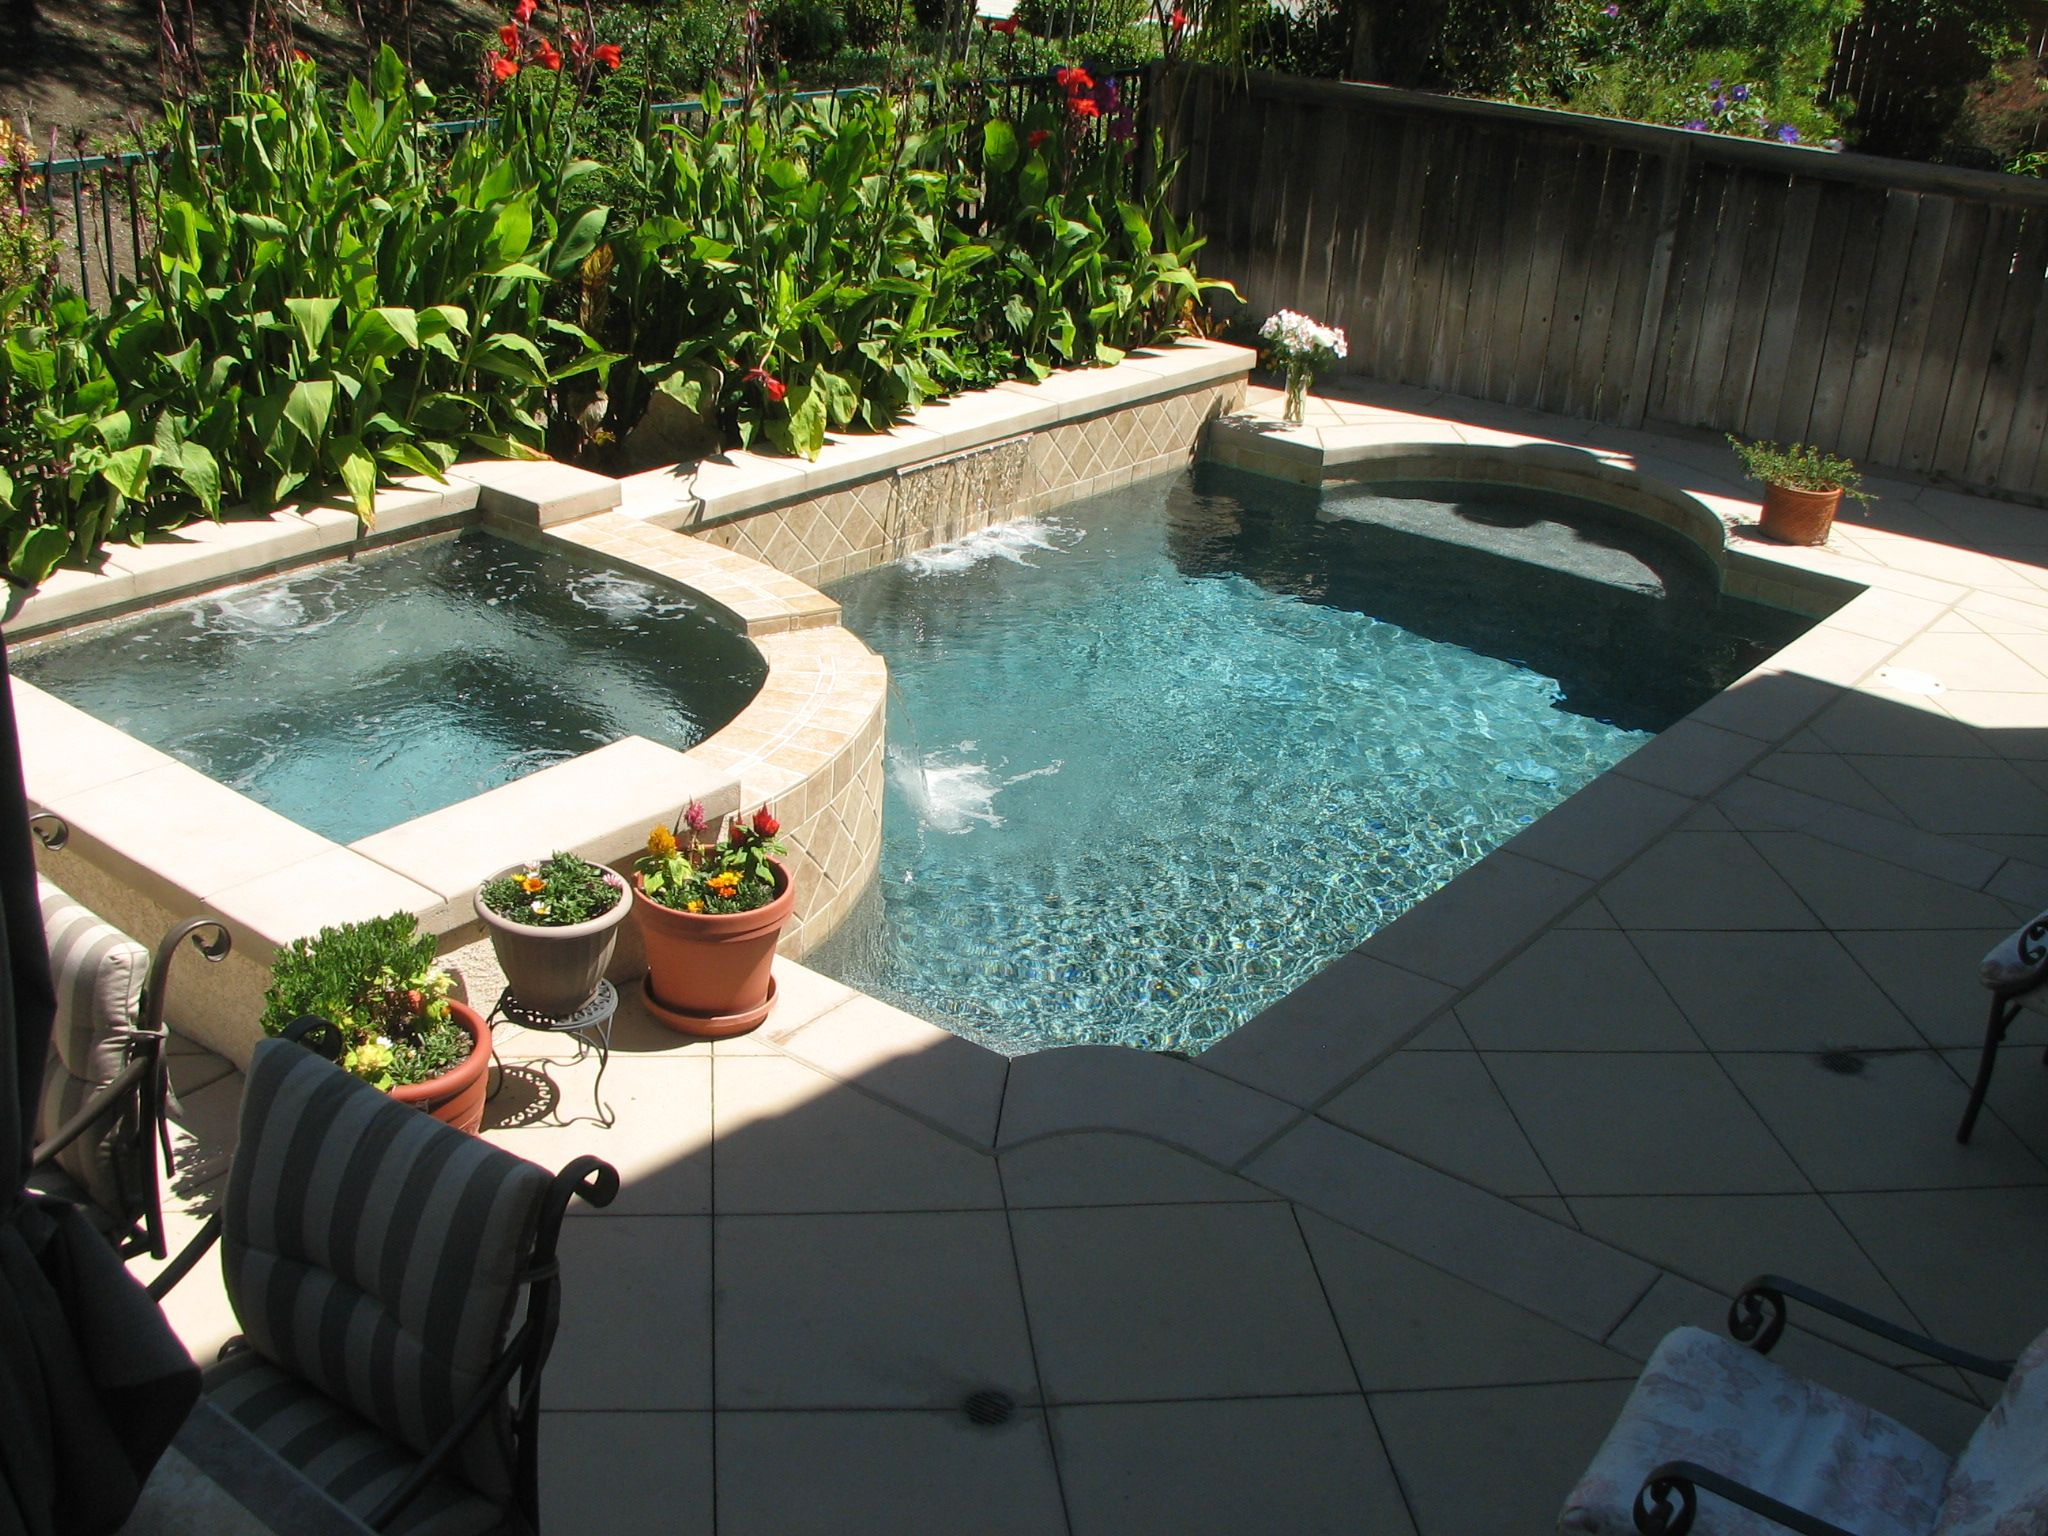 Small pool designs small backyards pacific paradise for Small backyard swimming pool designs